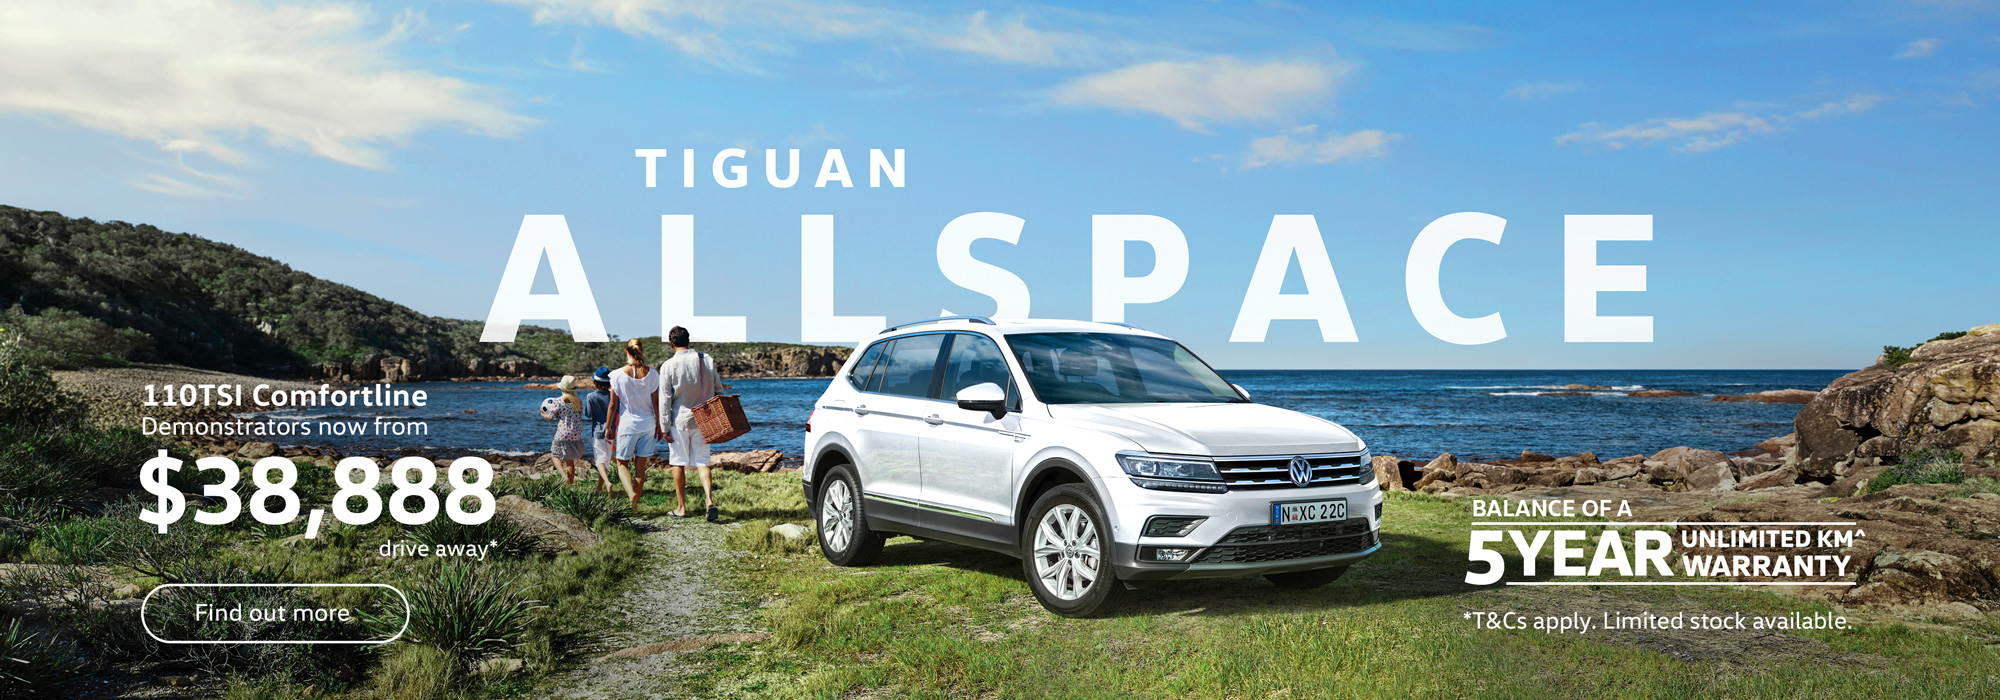 Tiguan Allspace 110TSI Comfortline from $38,888 driveaway